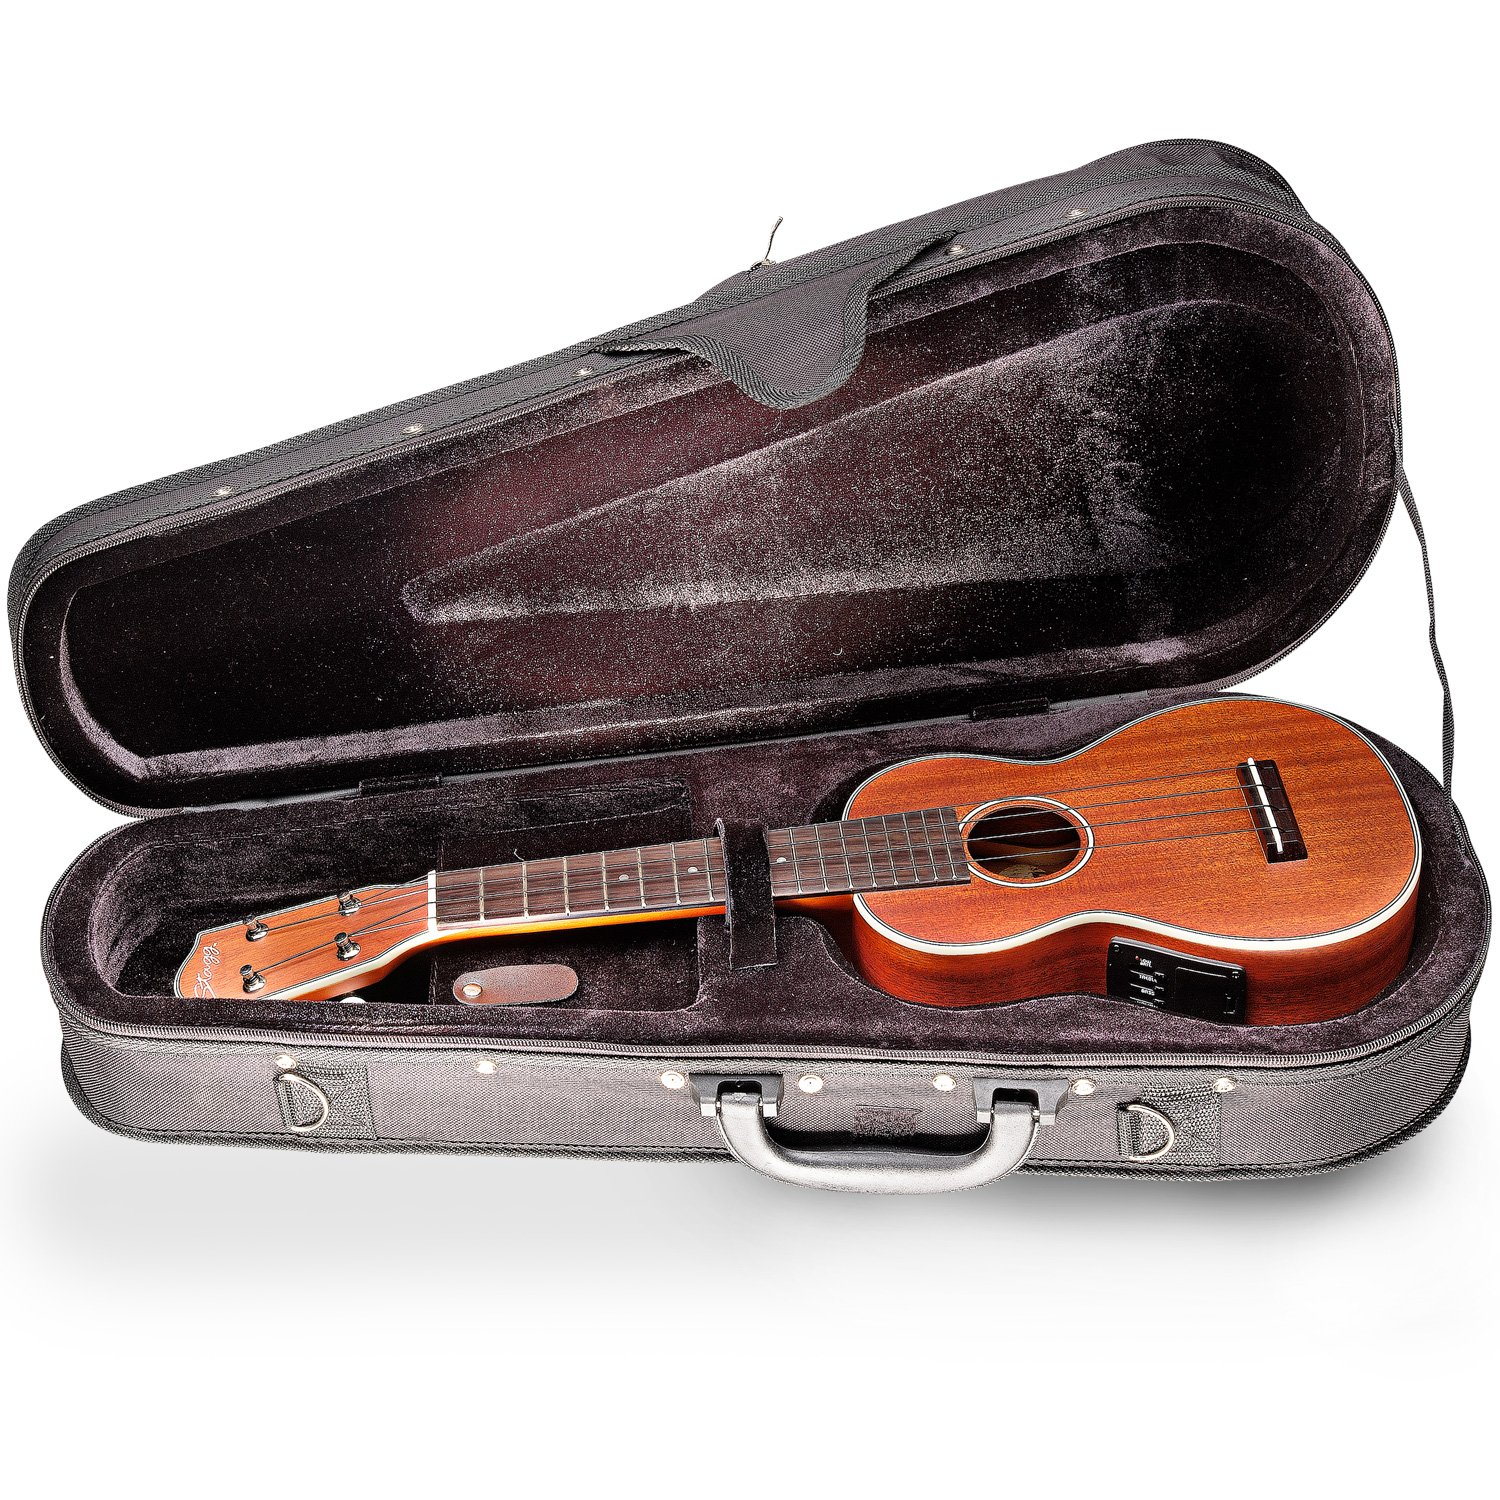 stagg hgb2uk t bags and cases musical instruments